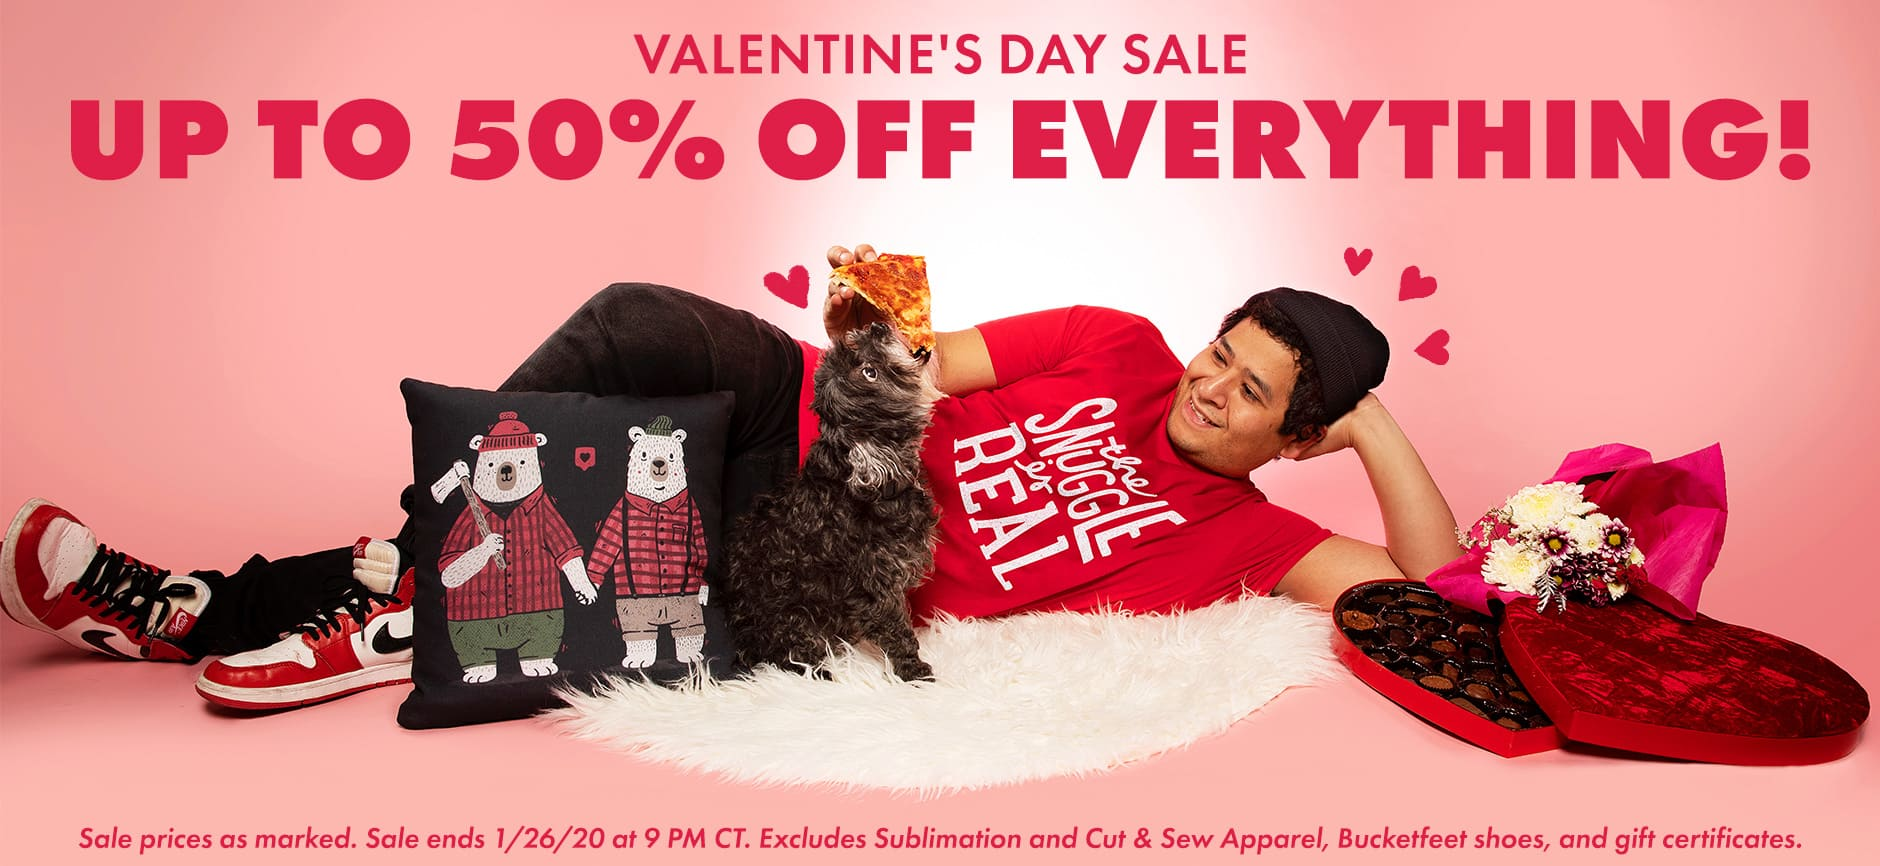 Shop the Threadless Valentine's Day Sale, up to 50% off EVERYTHING!